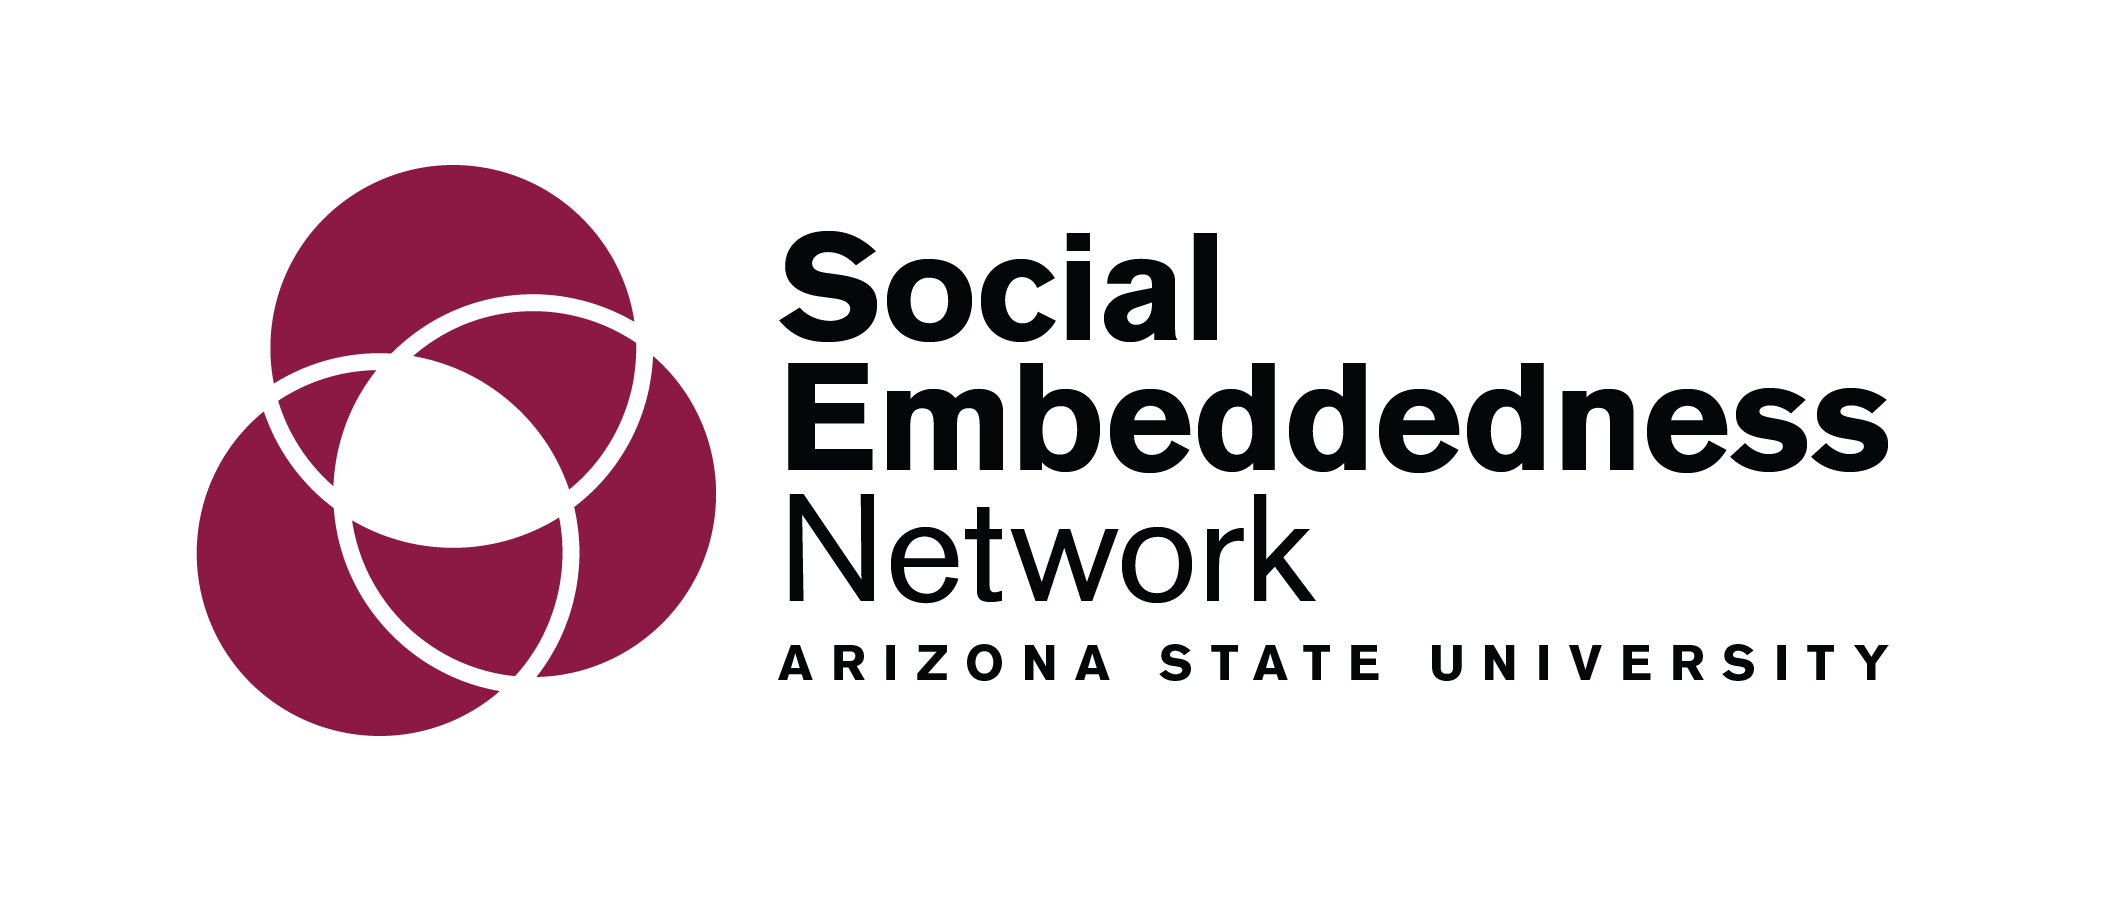 social_embeddedness_network_logo_final-05.png